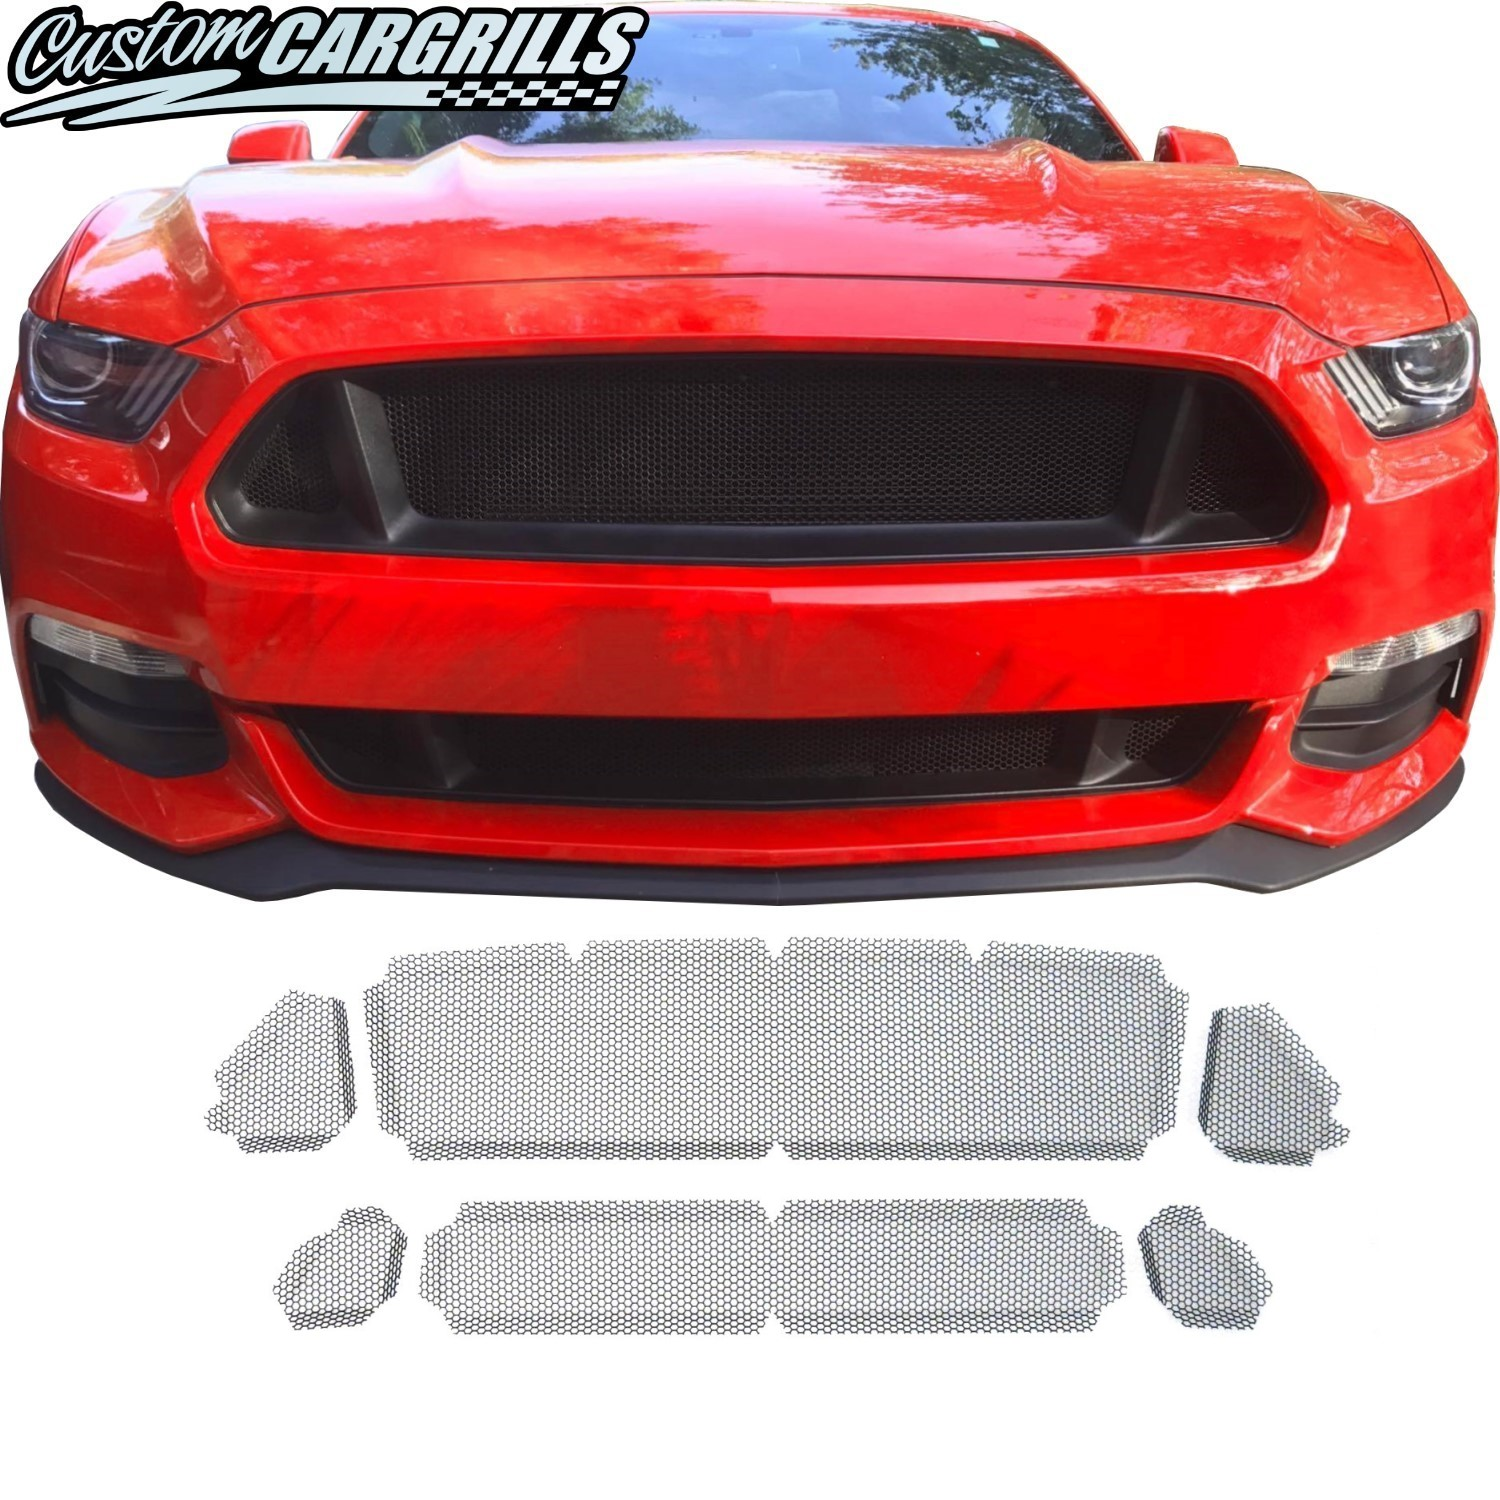 Honeycomb Mesh Grill Kit for 2015 - 2017 Ford Mustang GT